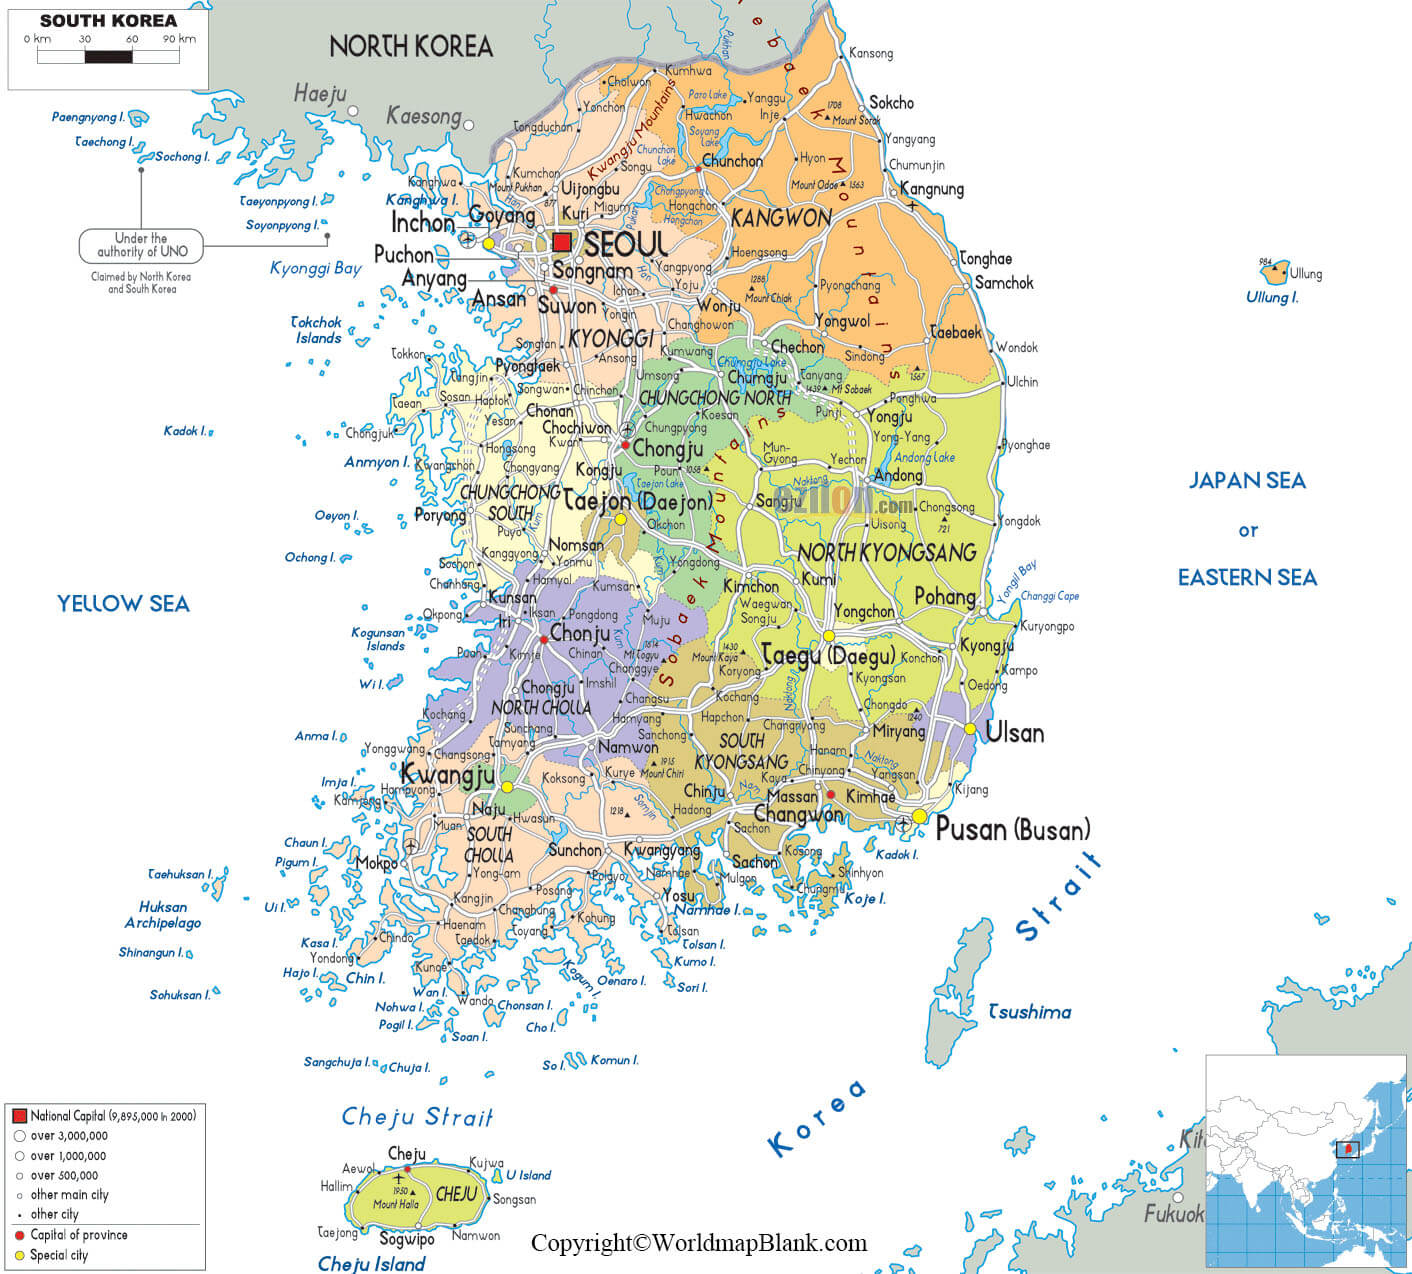 Labeled Map of Korea